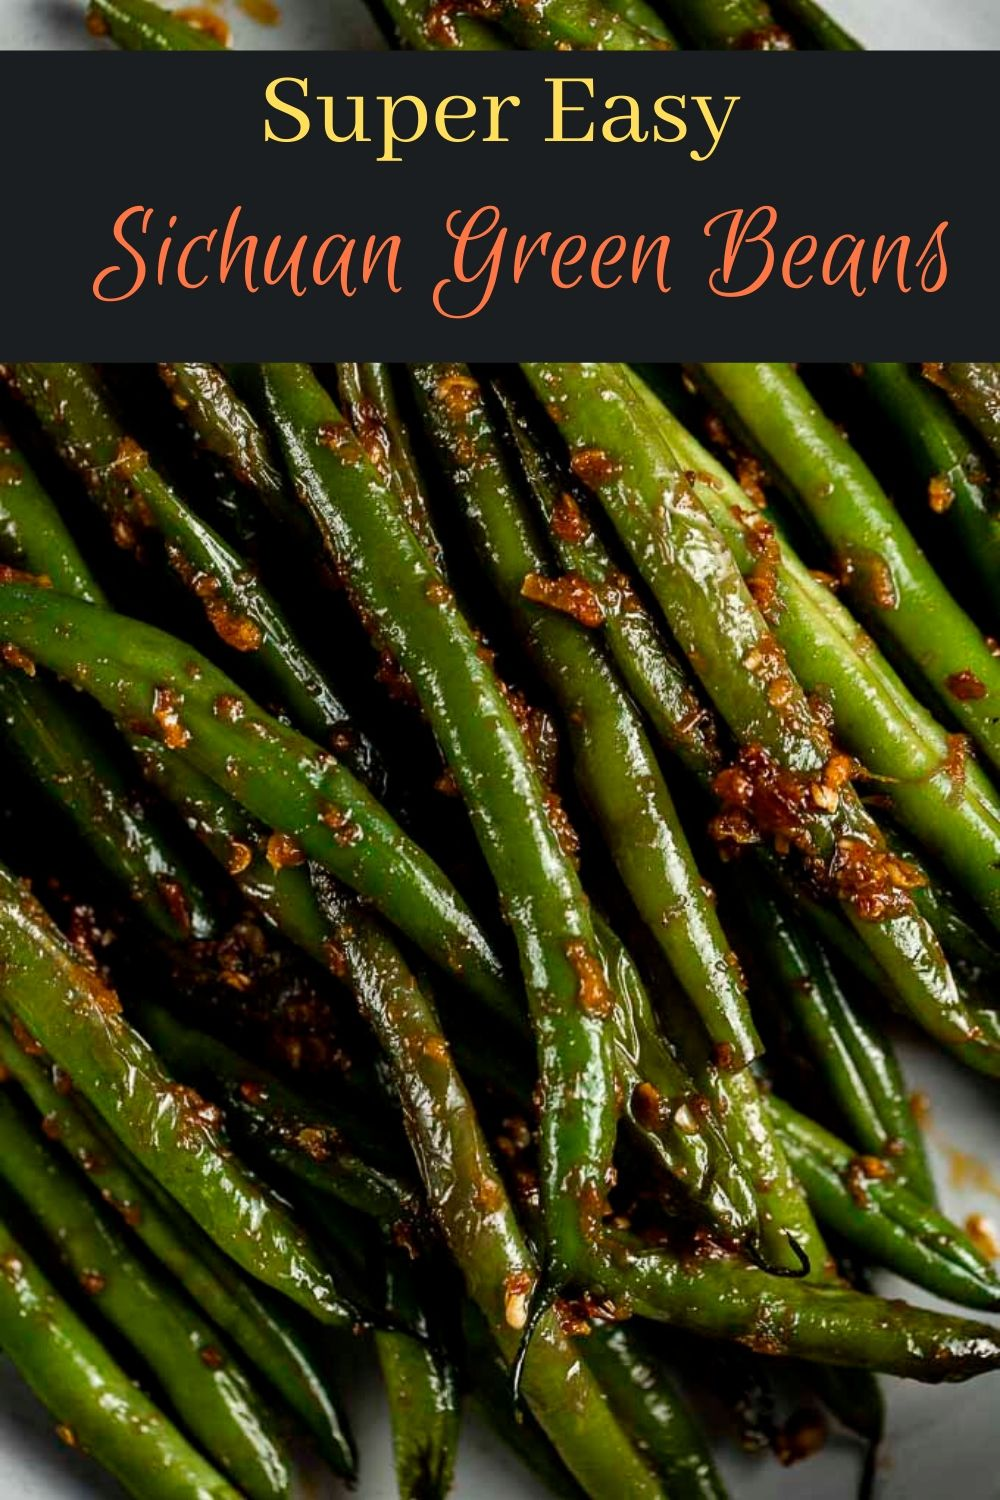 Spicy Chinese Stir Fry Green Beans